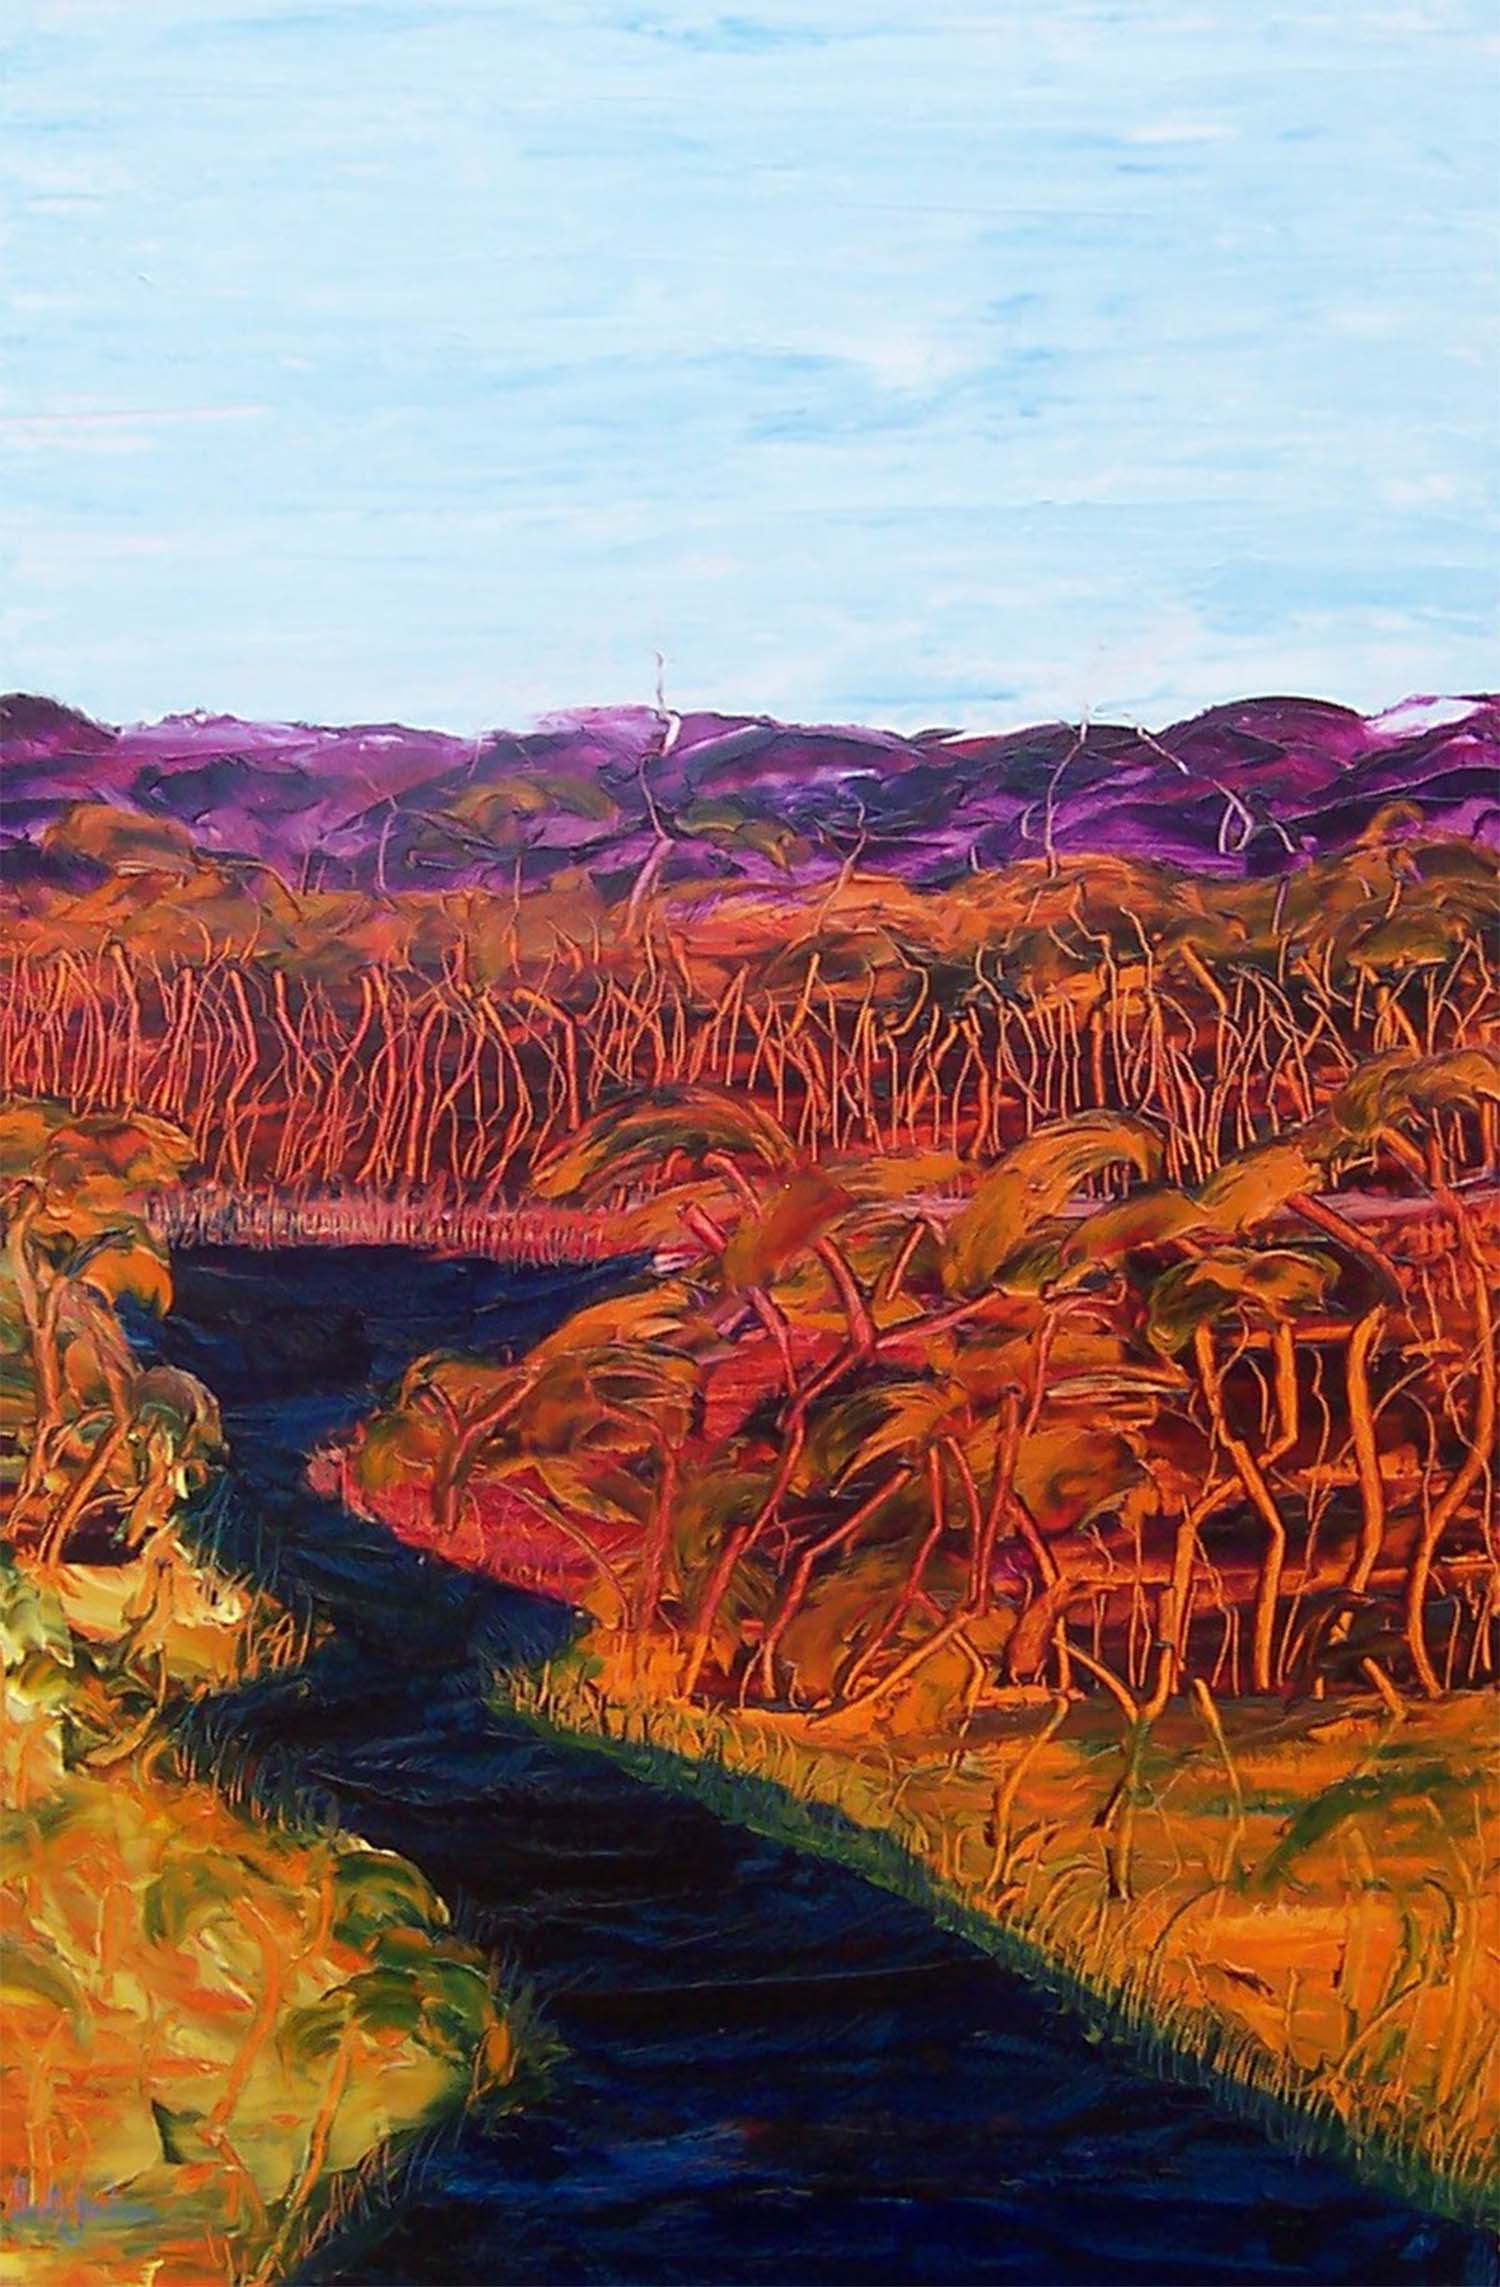 """This rich and textured work represents the striking landscapes of Australia's outback rivers and bush landscape... always rich and visually dynamic.  Title """" River and Bush """", 90 cm x 60 cm, ref 0371, oil on board, ready to hang,  $860 AUD"""